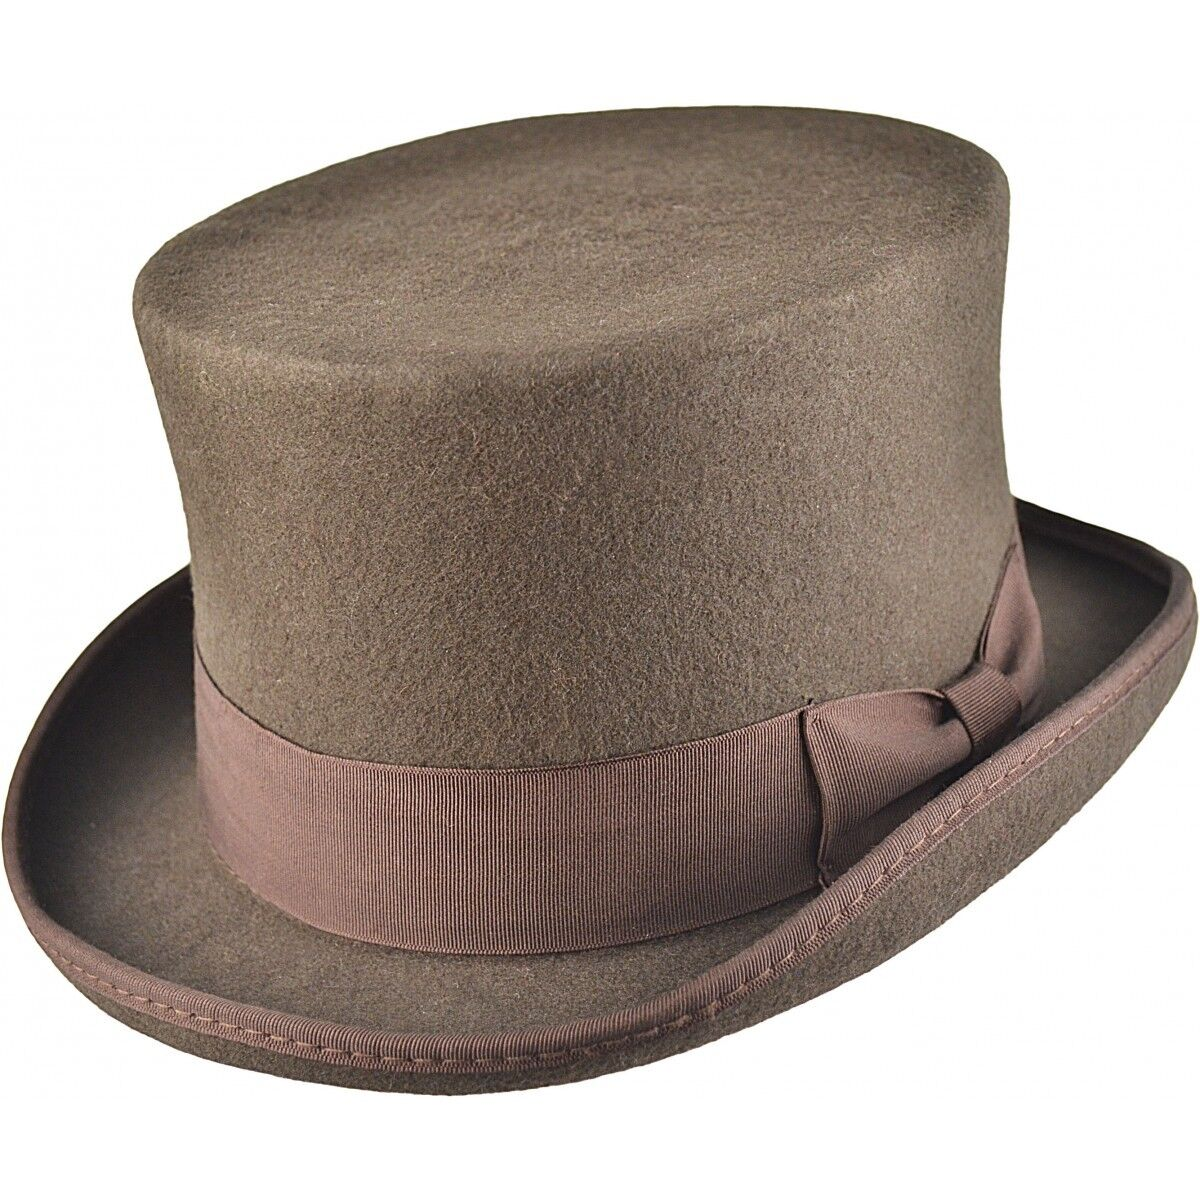 Quality Top Hat wedding party party party ascot for men damen many colours-iHATSLondon UK  | Schnelle Lieferung